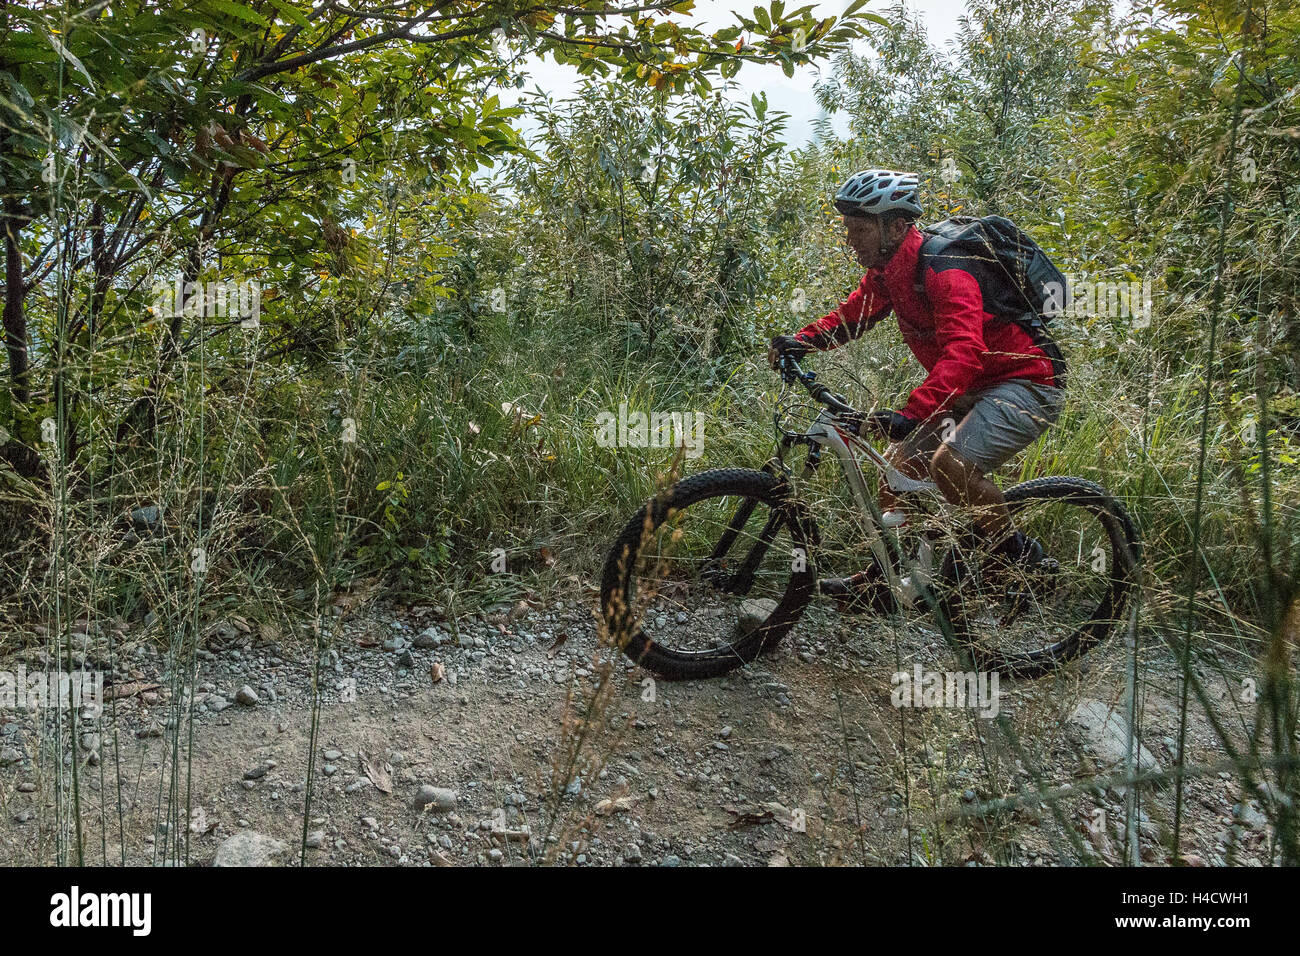 Mountain biker riding in the woods trail riding in Italy biking through nature cycling woodland trails park outdoors - Stock Image